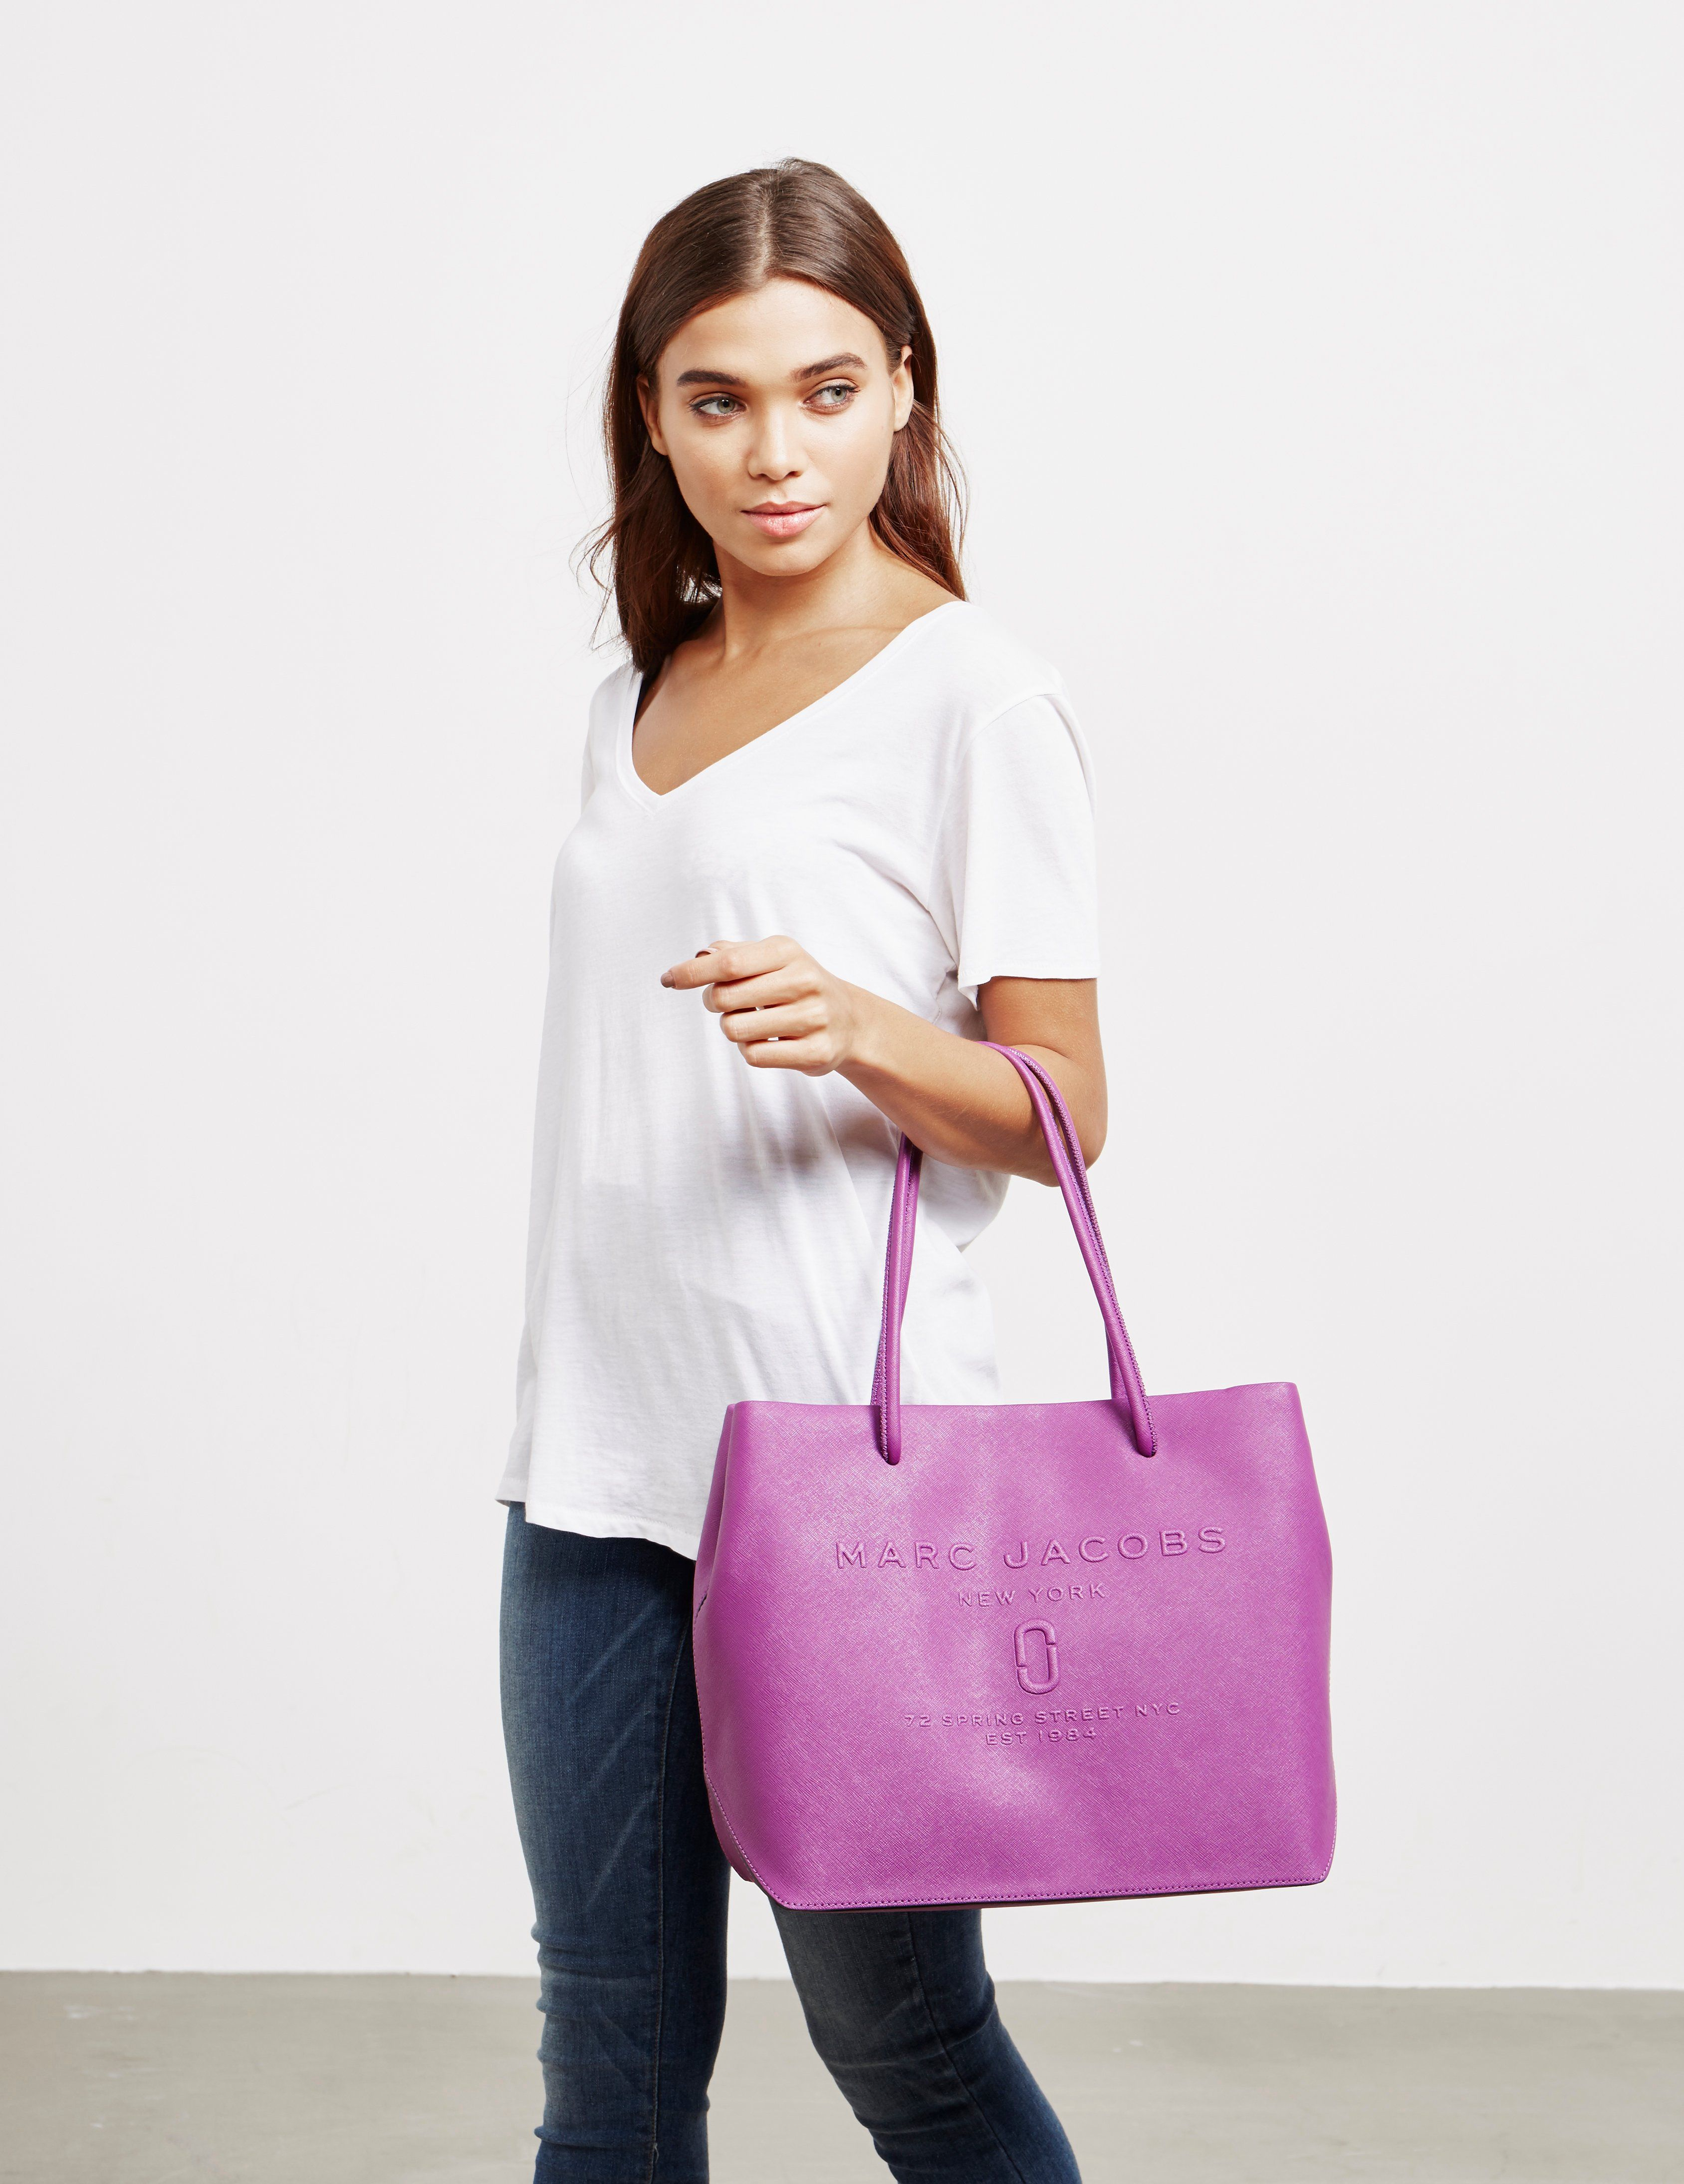 Marc Jacobs Embossed Tote Bag